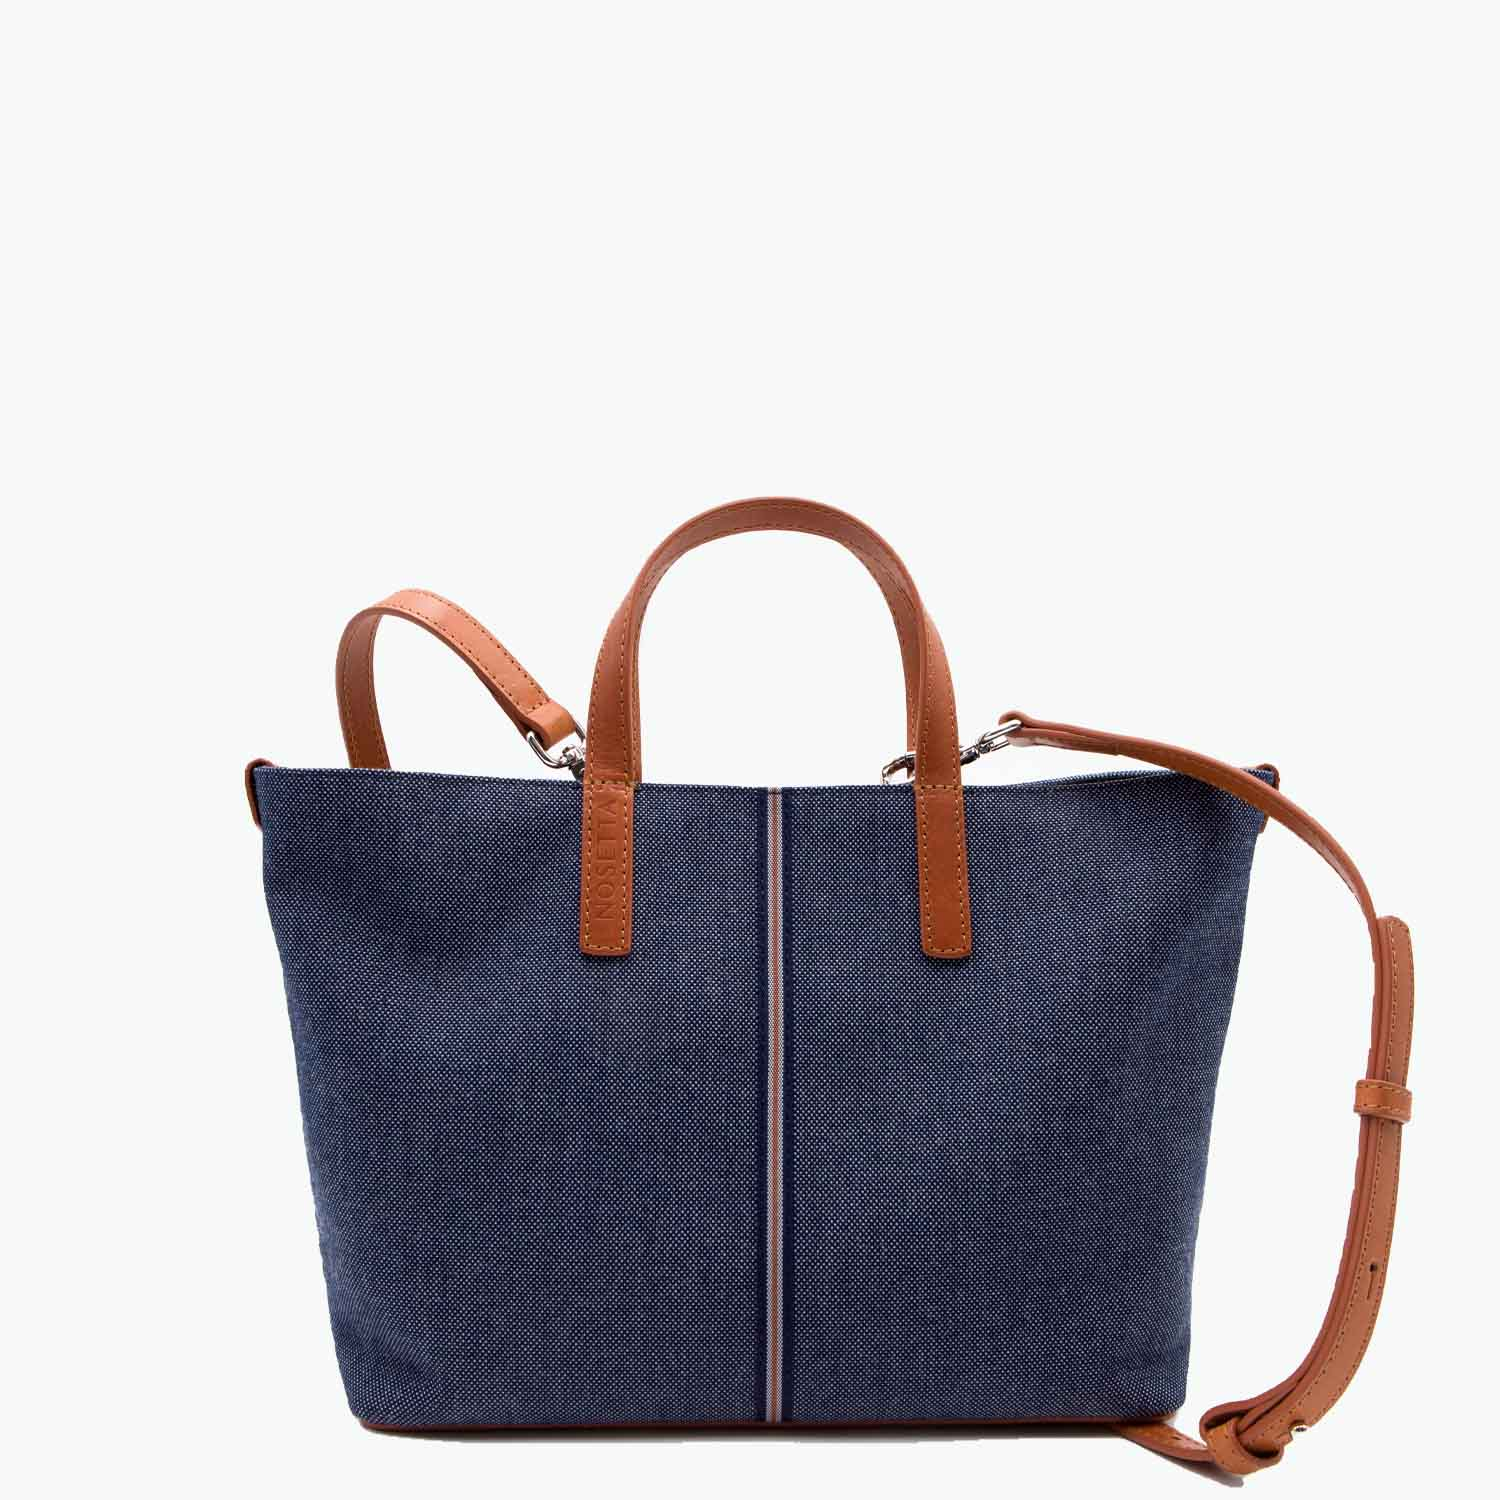 Carlia Small Tote Denim and Leather - Nosetta